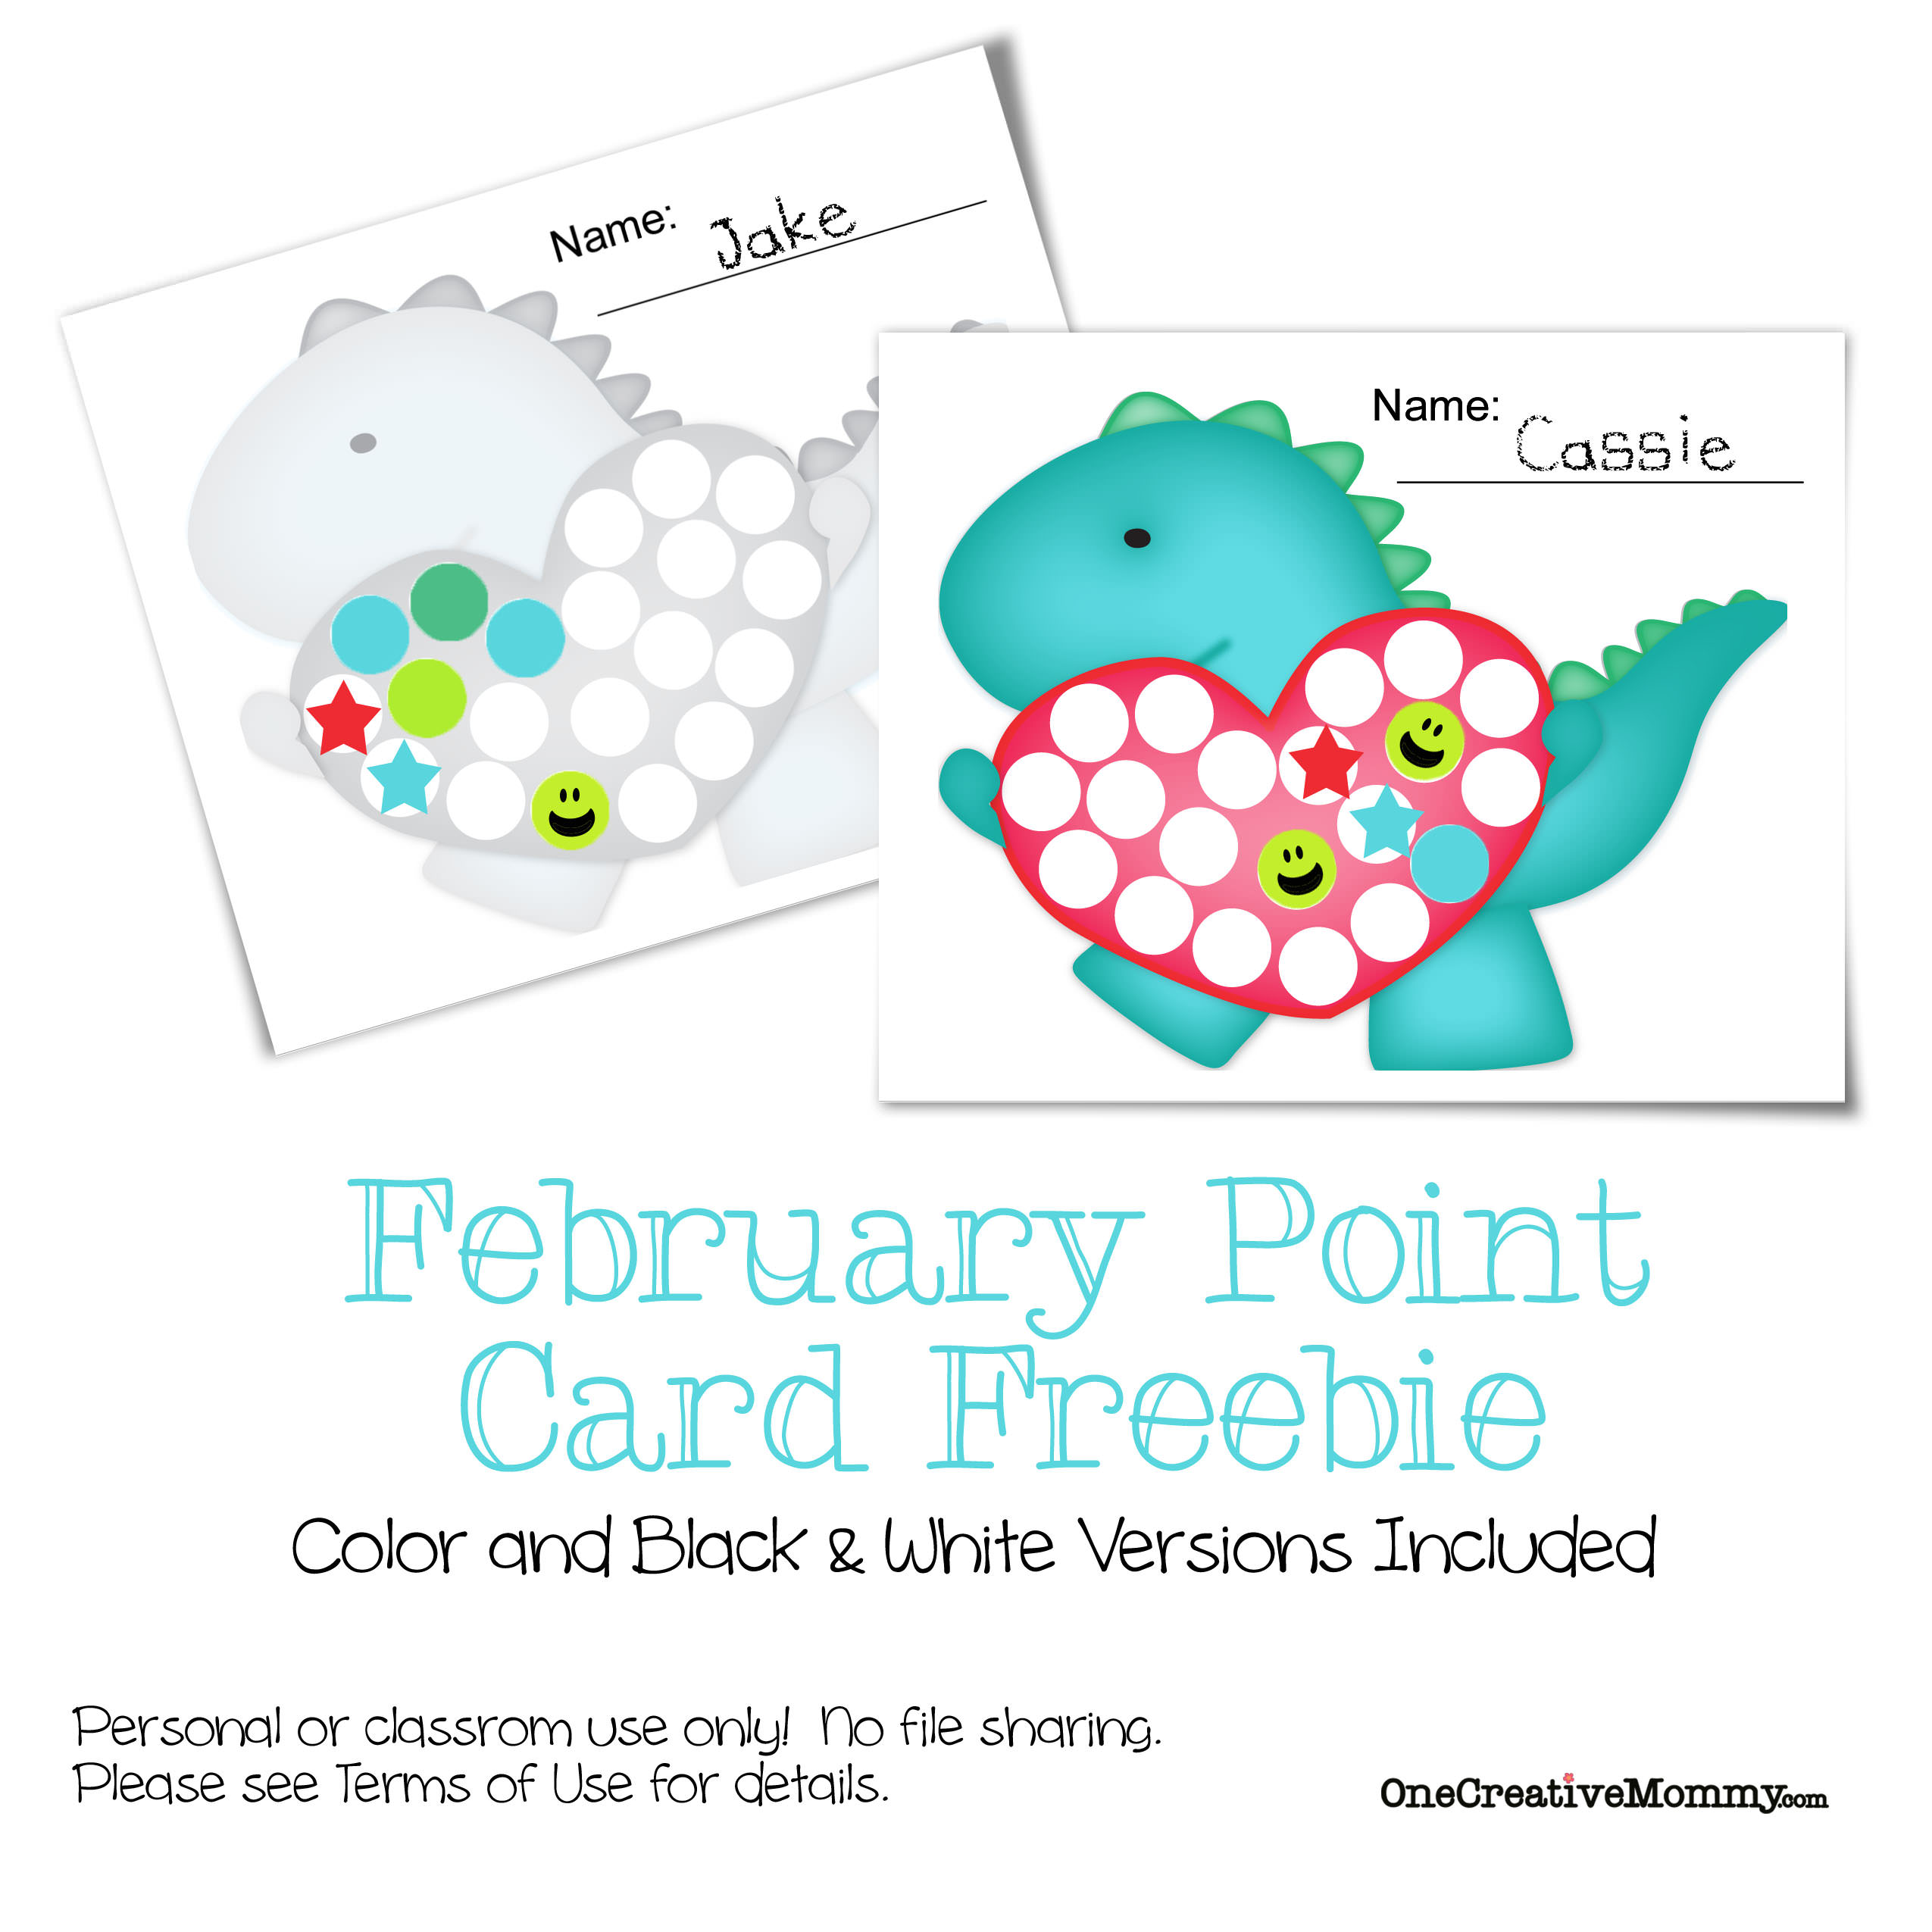 February Point Card Freebie {A great way to keep track of goals, behavior, or completed work--1 full point card = $1, a prize, or whatever you want!} #motivate #kids